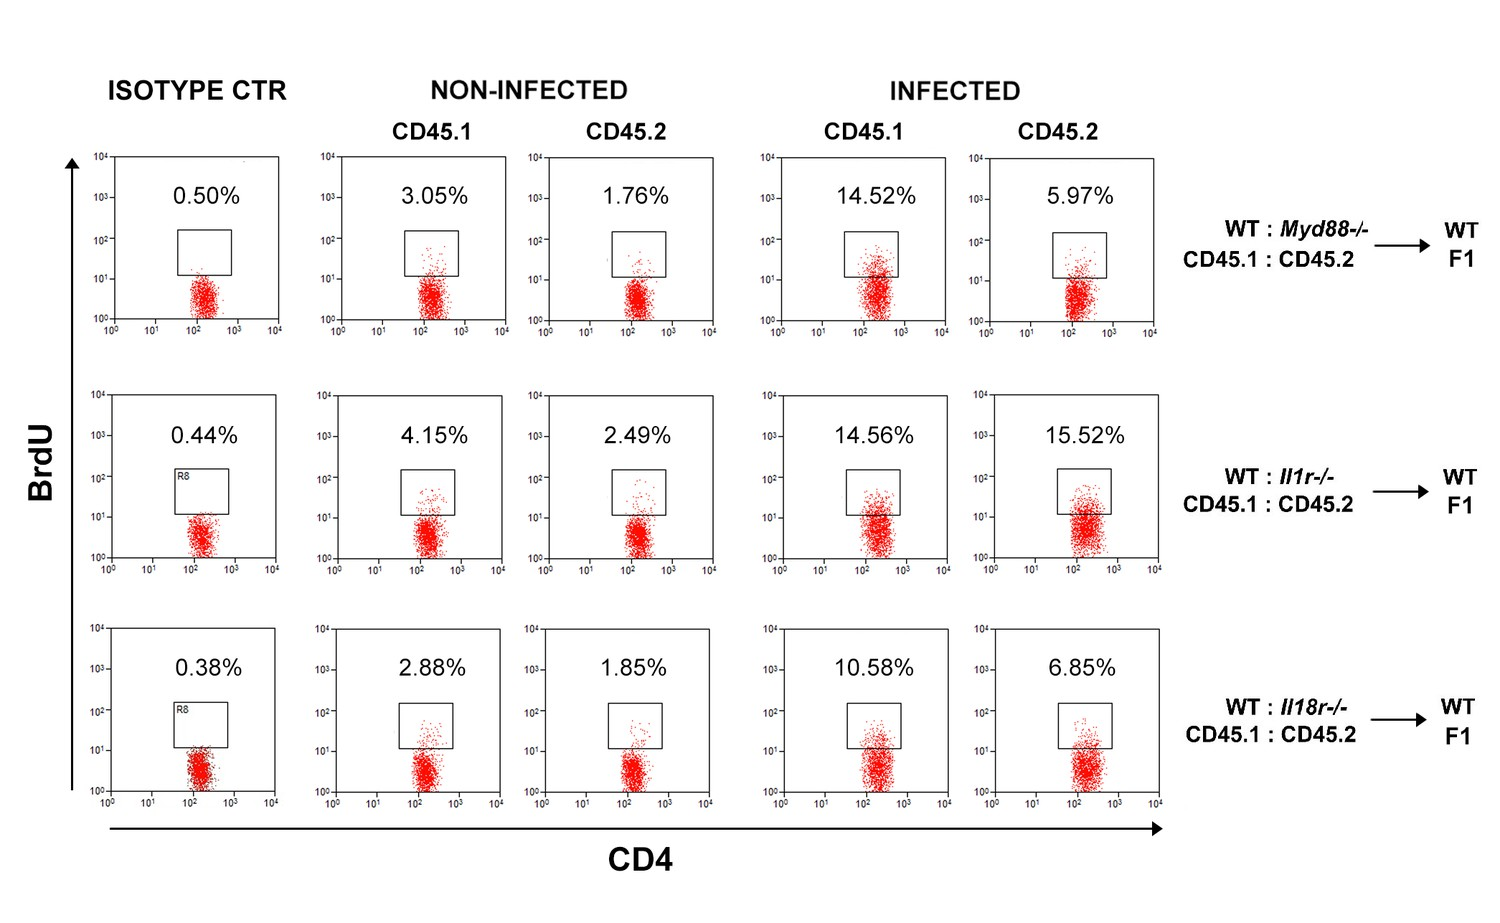 Crucial role for T cell-intrinsic IL-18R-MyD88 signaling in cognate